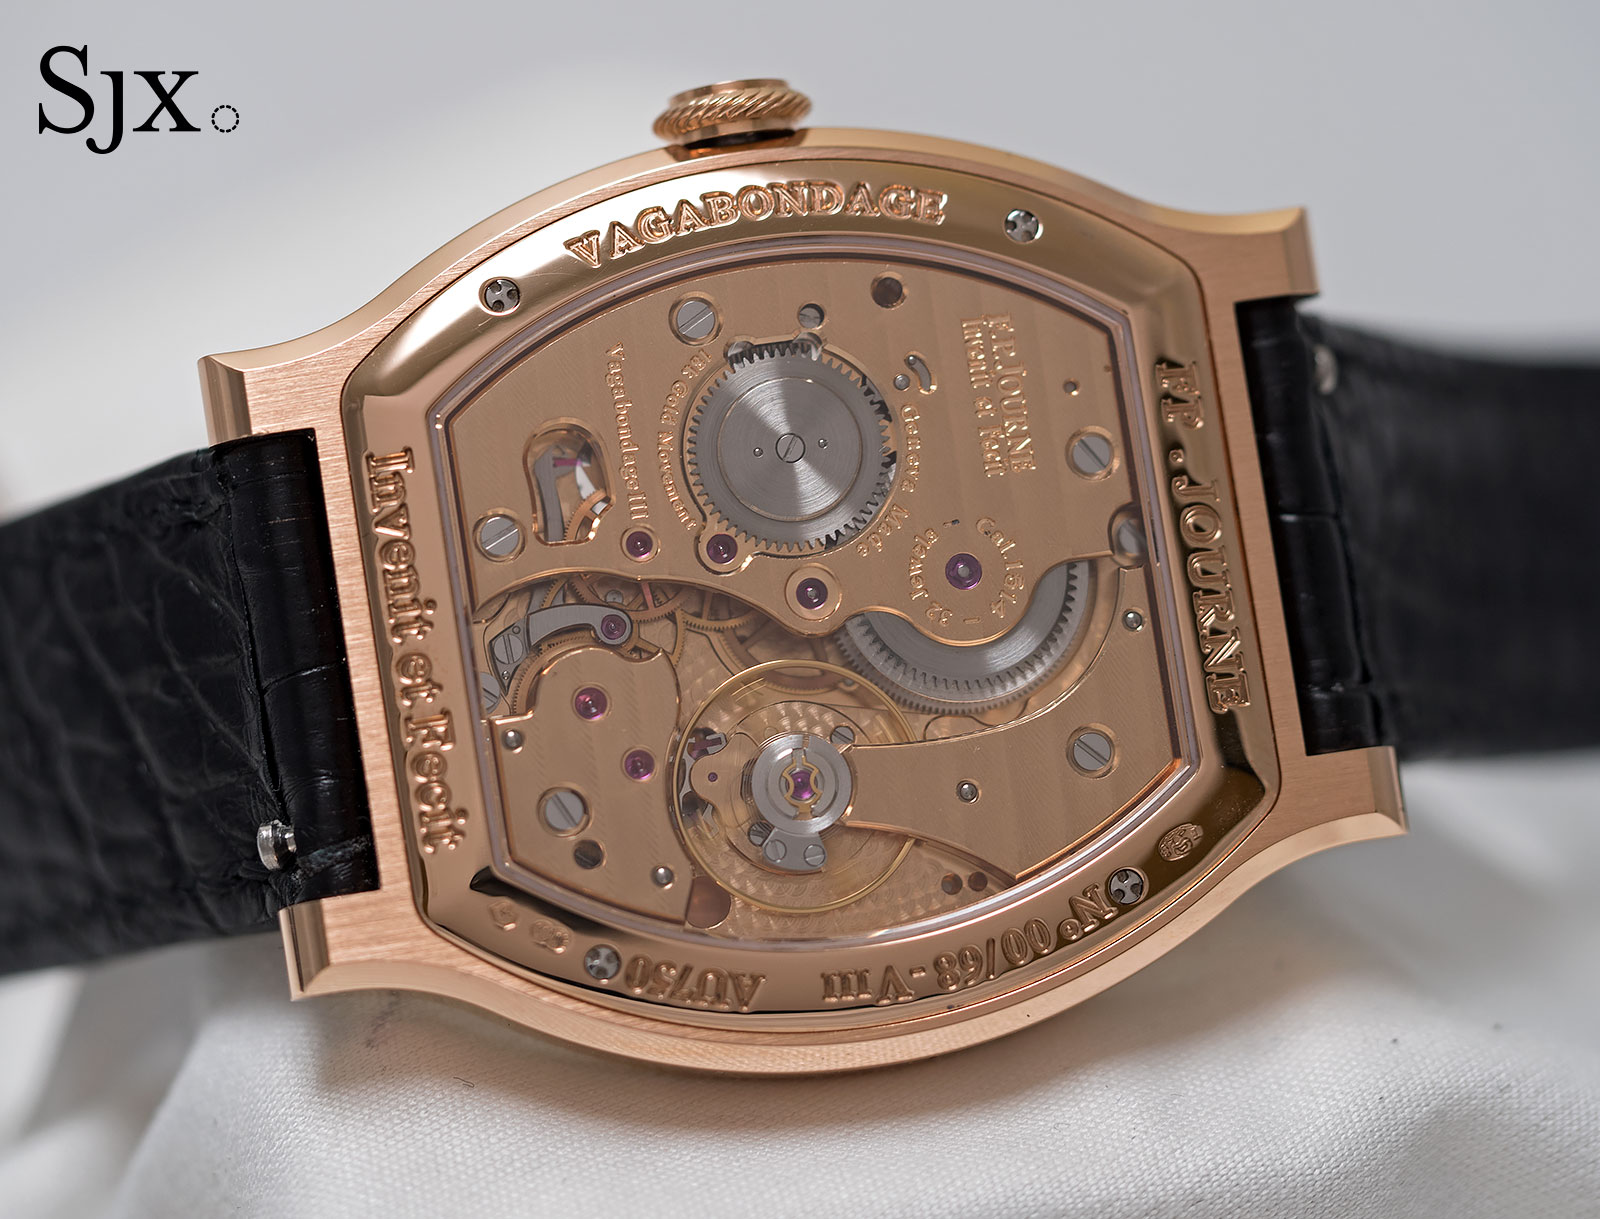 FP Journe Vagabondage III red gold 14